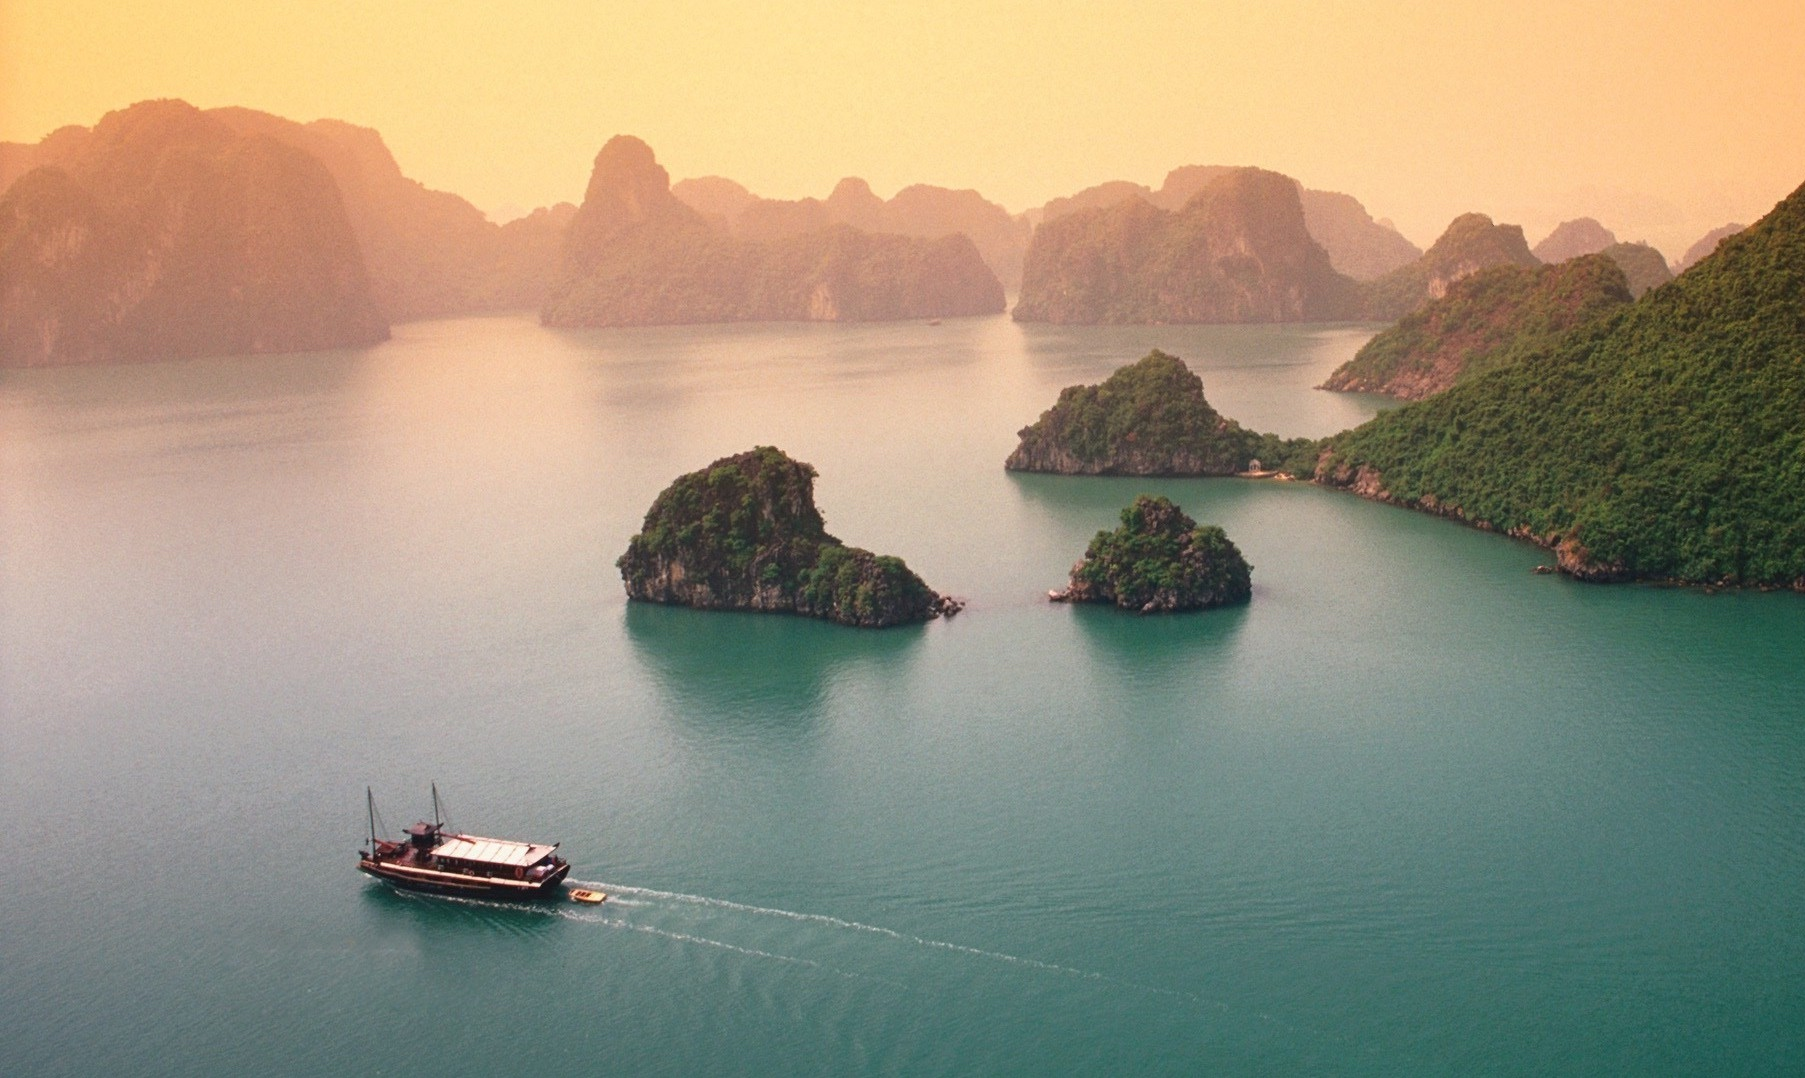 Viêt Nam - Baie de Ha Long